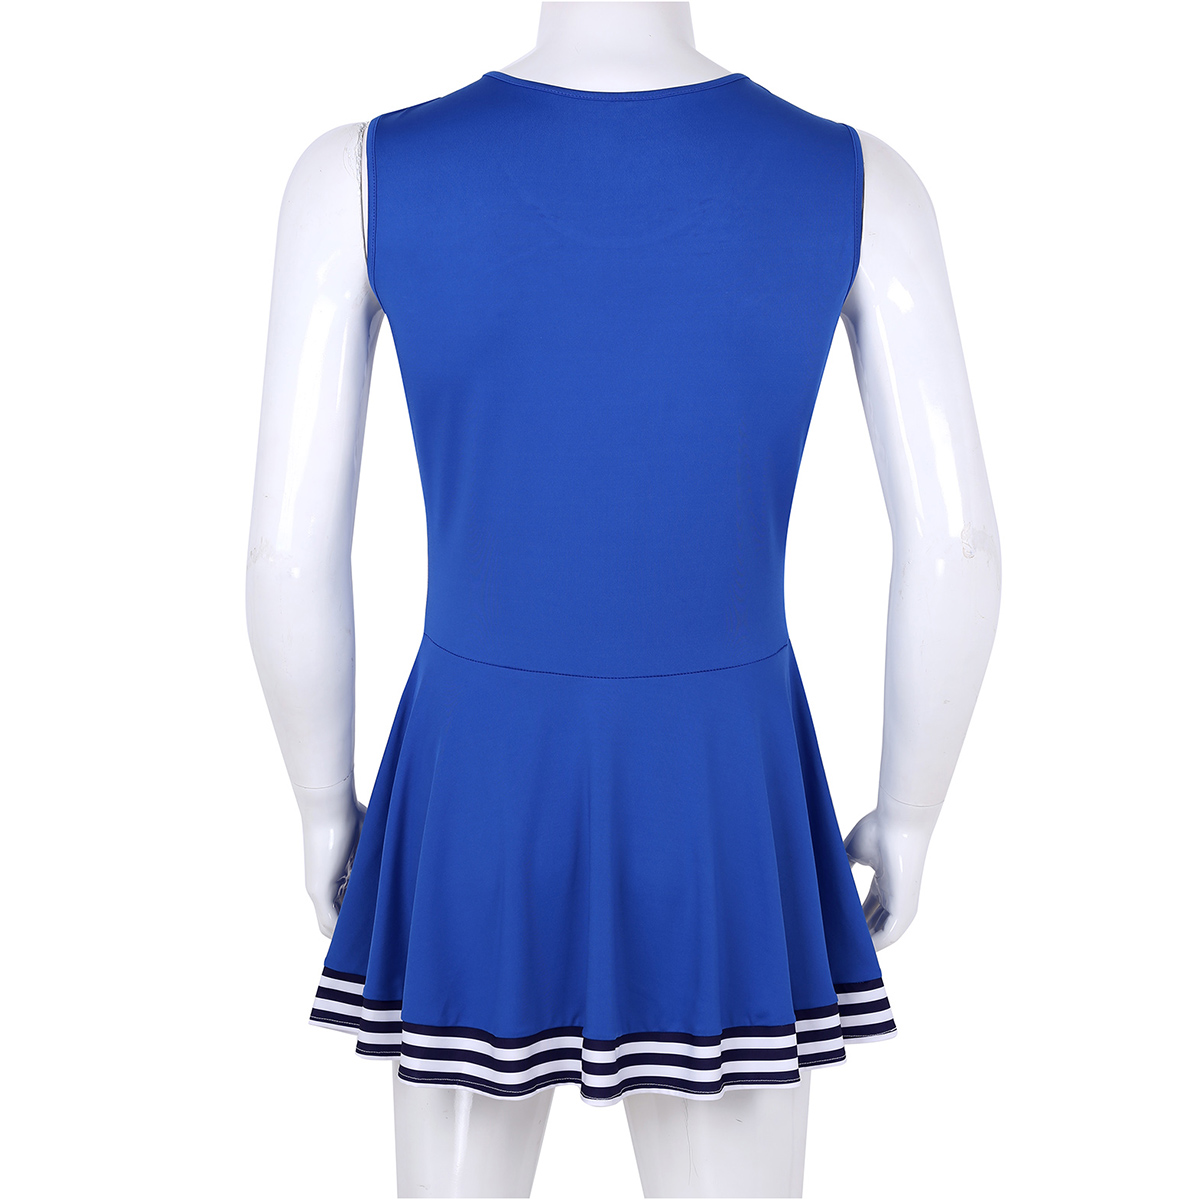 Image 4 - Men Sissy Dress Charming Cheerleader Cosplay Costume Dress Scoop Neck Sleeveless Pleated Fancy Short Dress Cheerleader Dress-in Sexy Costumes from Novelty & Special Use